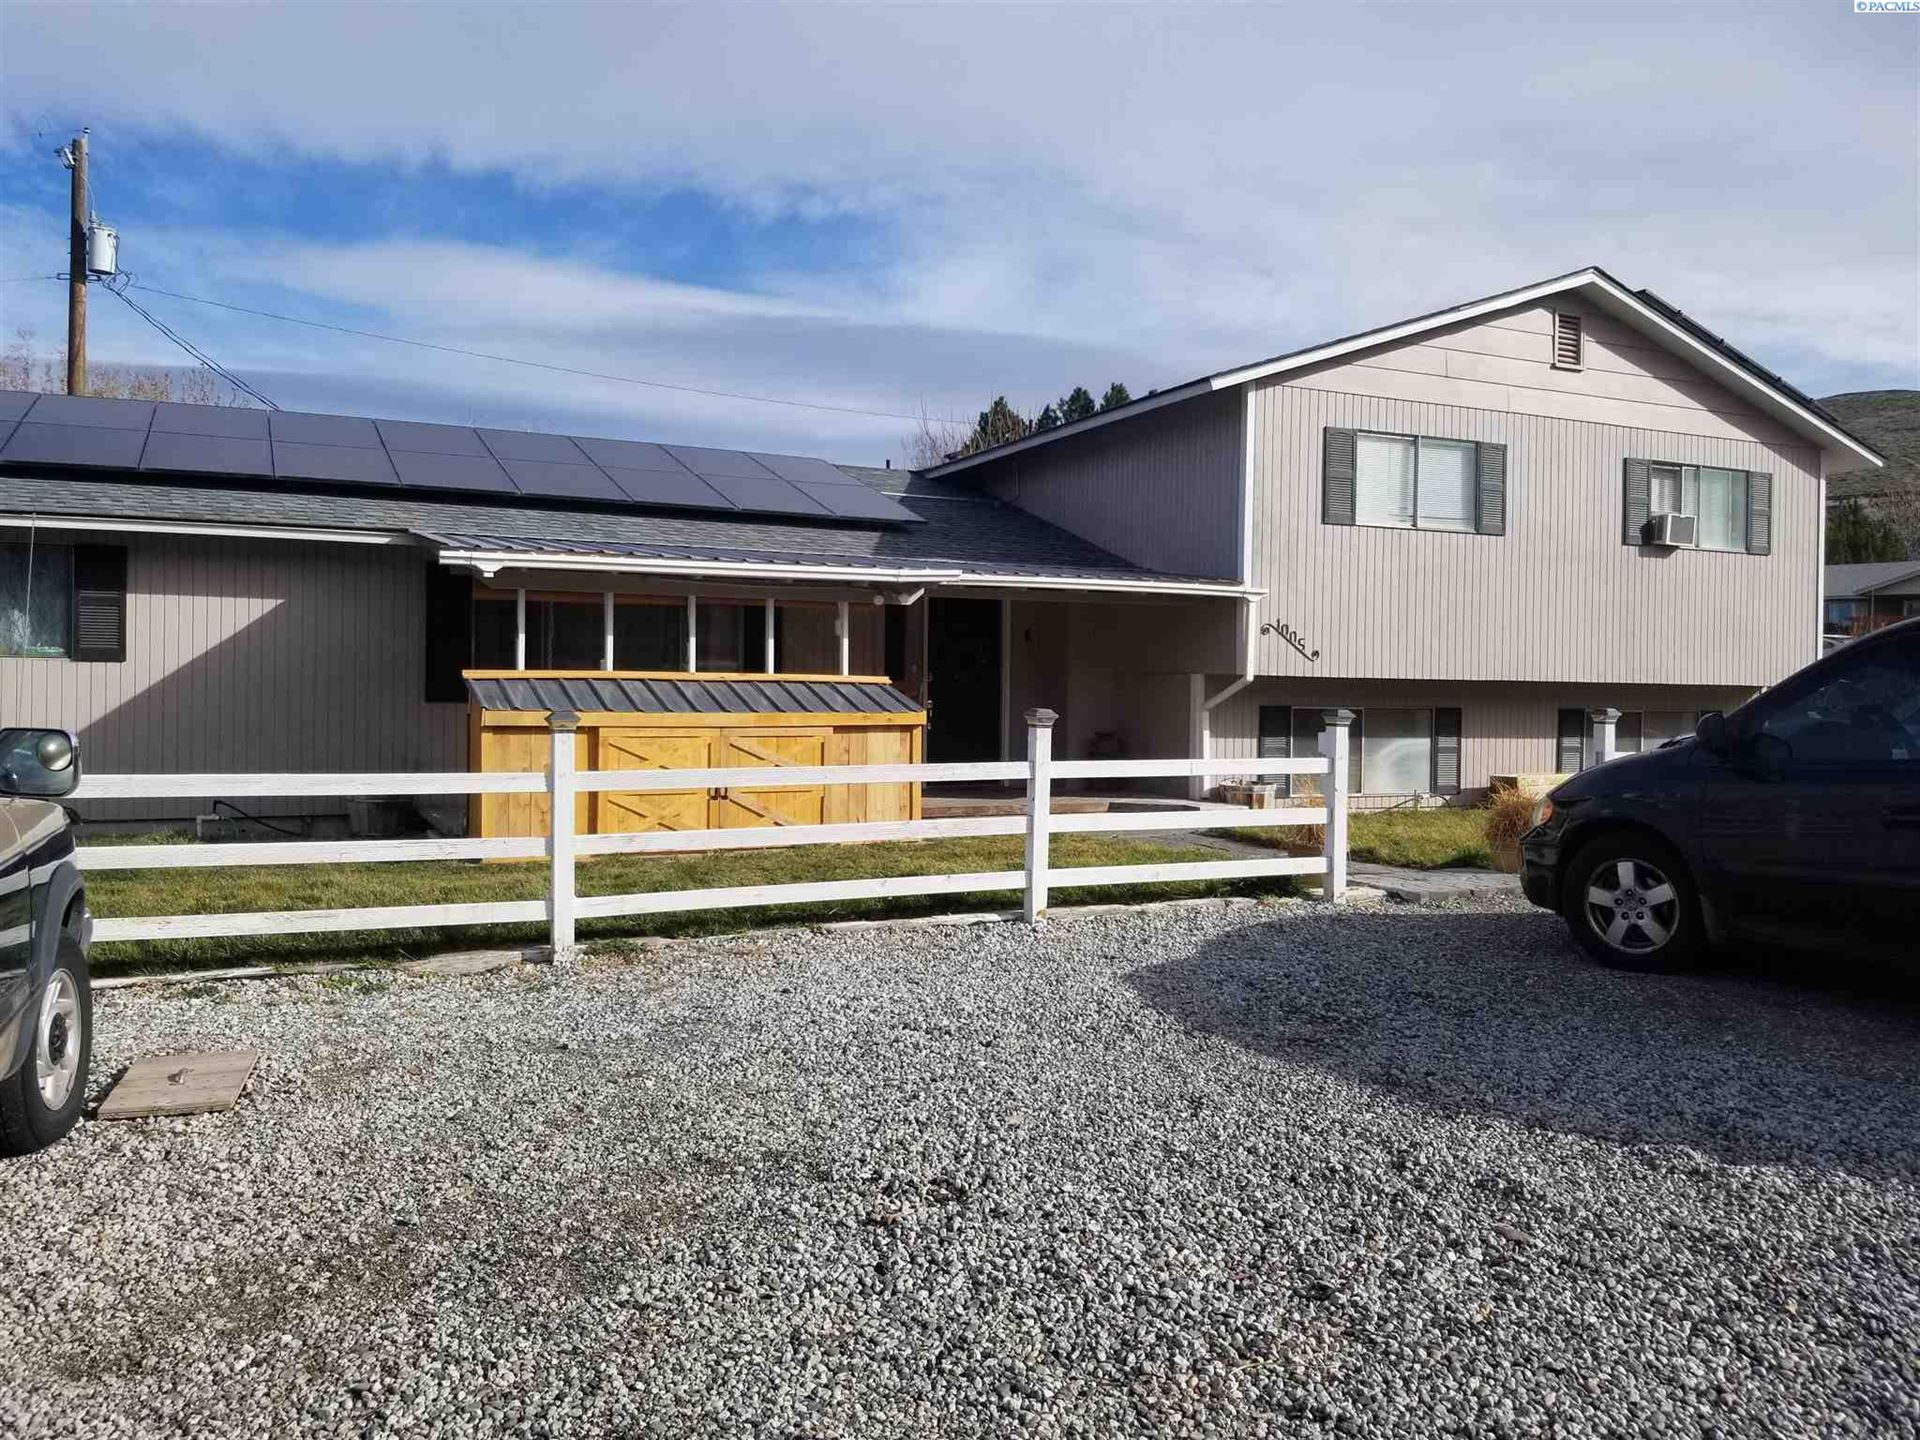 Photo of 1005 CAMPBELL DR., Prosser, WA 99350 (MLS # 251451)